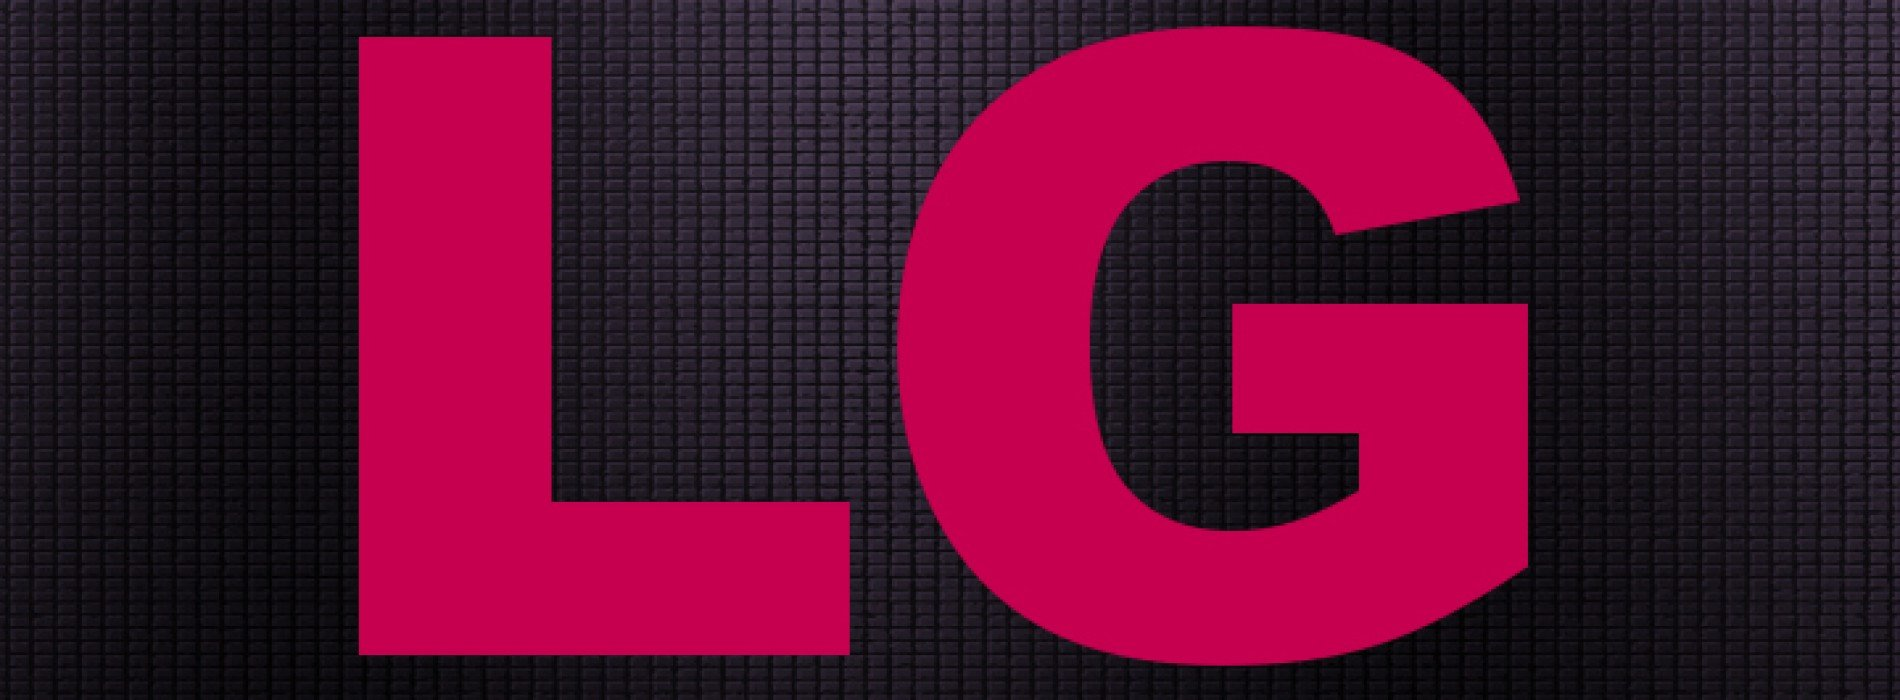 LG G2 tipped for September U.S. launch with Verizon getting in on the fun